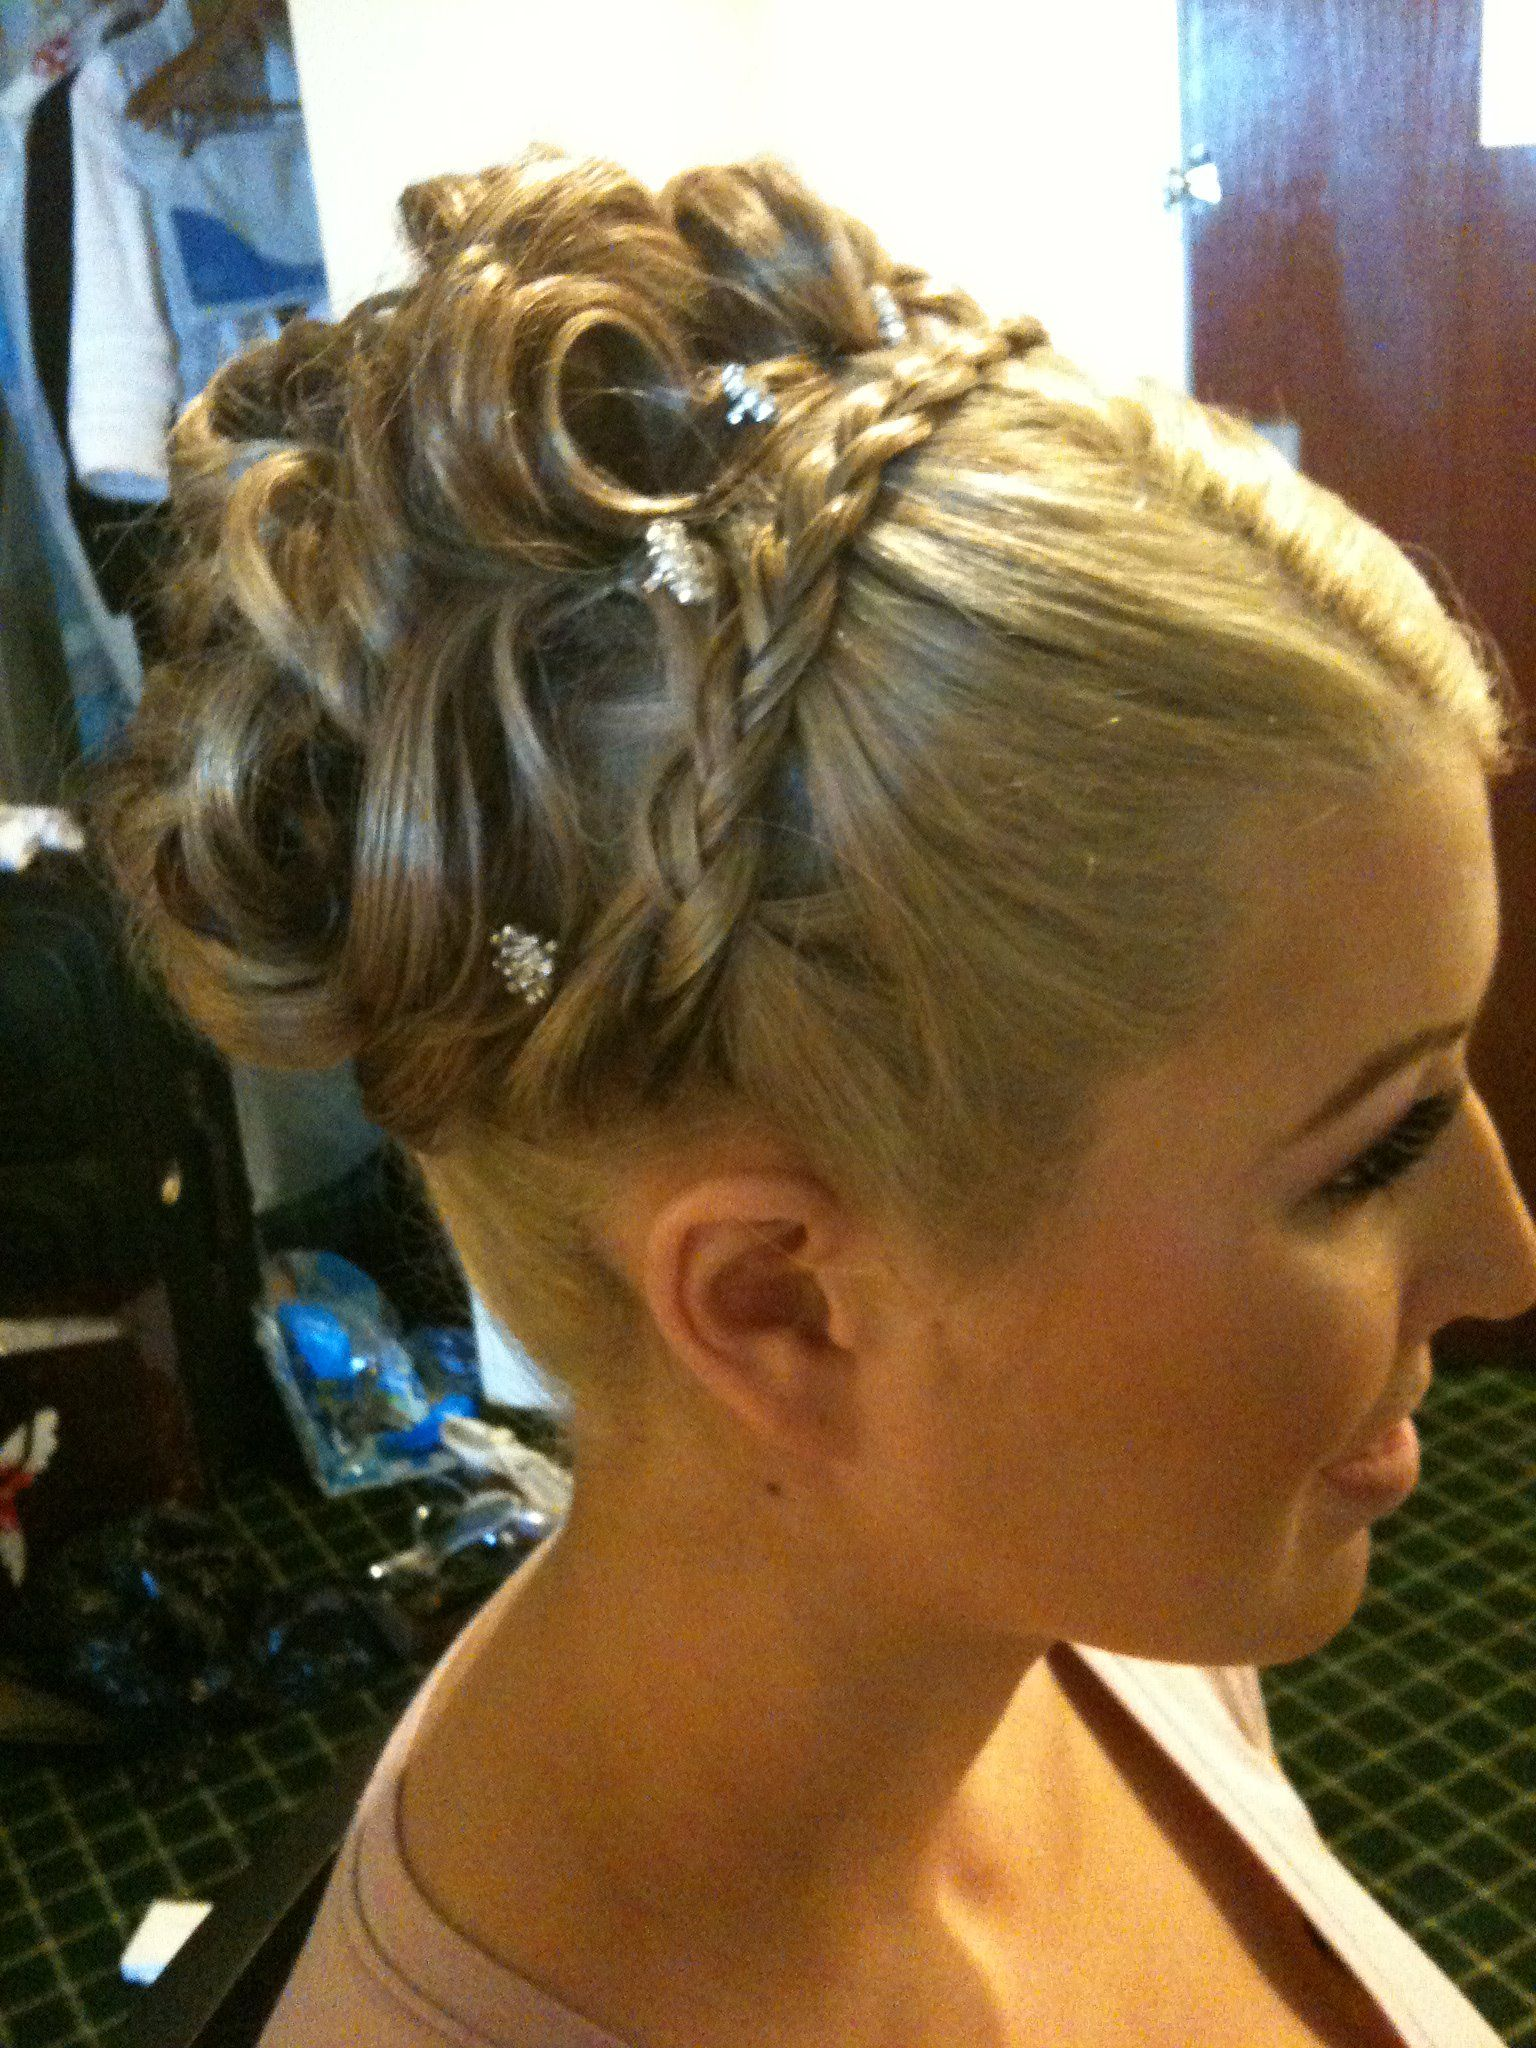 Heathers Maid Of Honor My Hairstyles My Passion